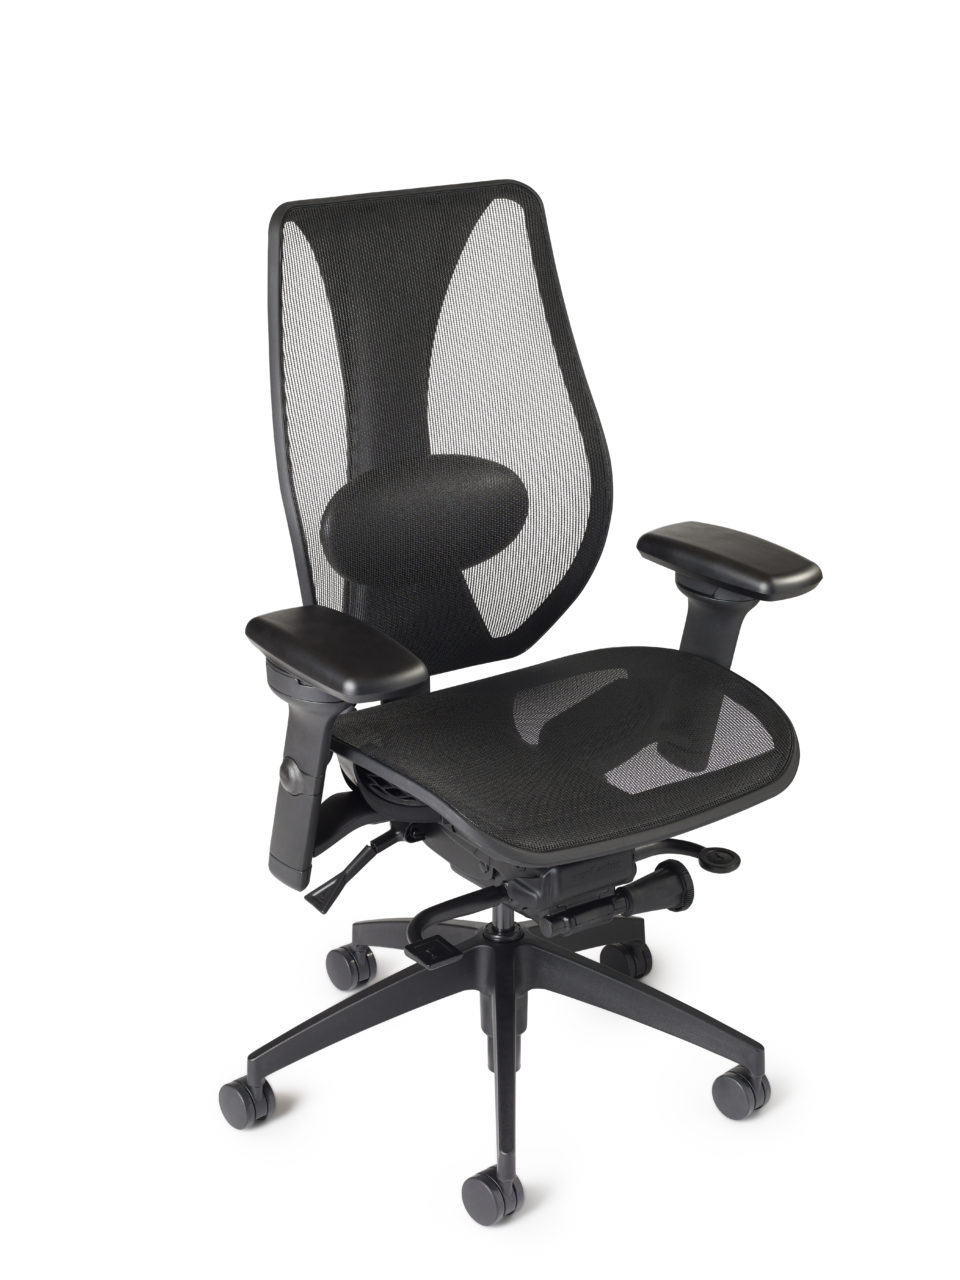 tCentric Hybrid All Mesh Lumbar Support Adjustable Arms Chrome Accent Casters